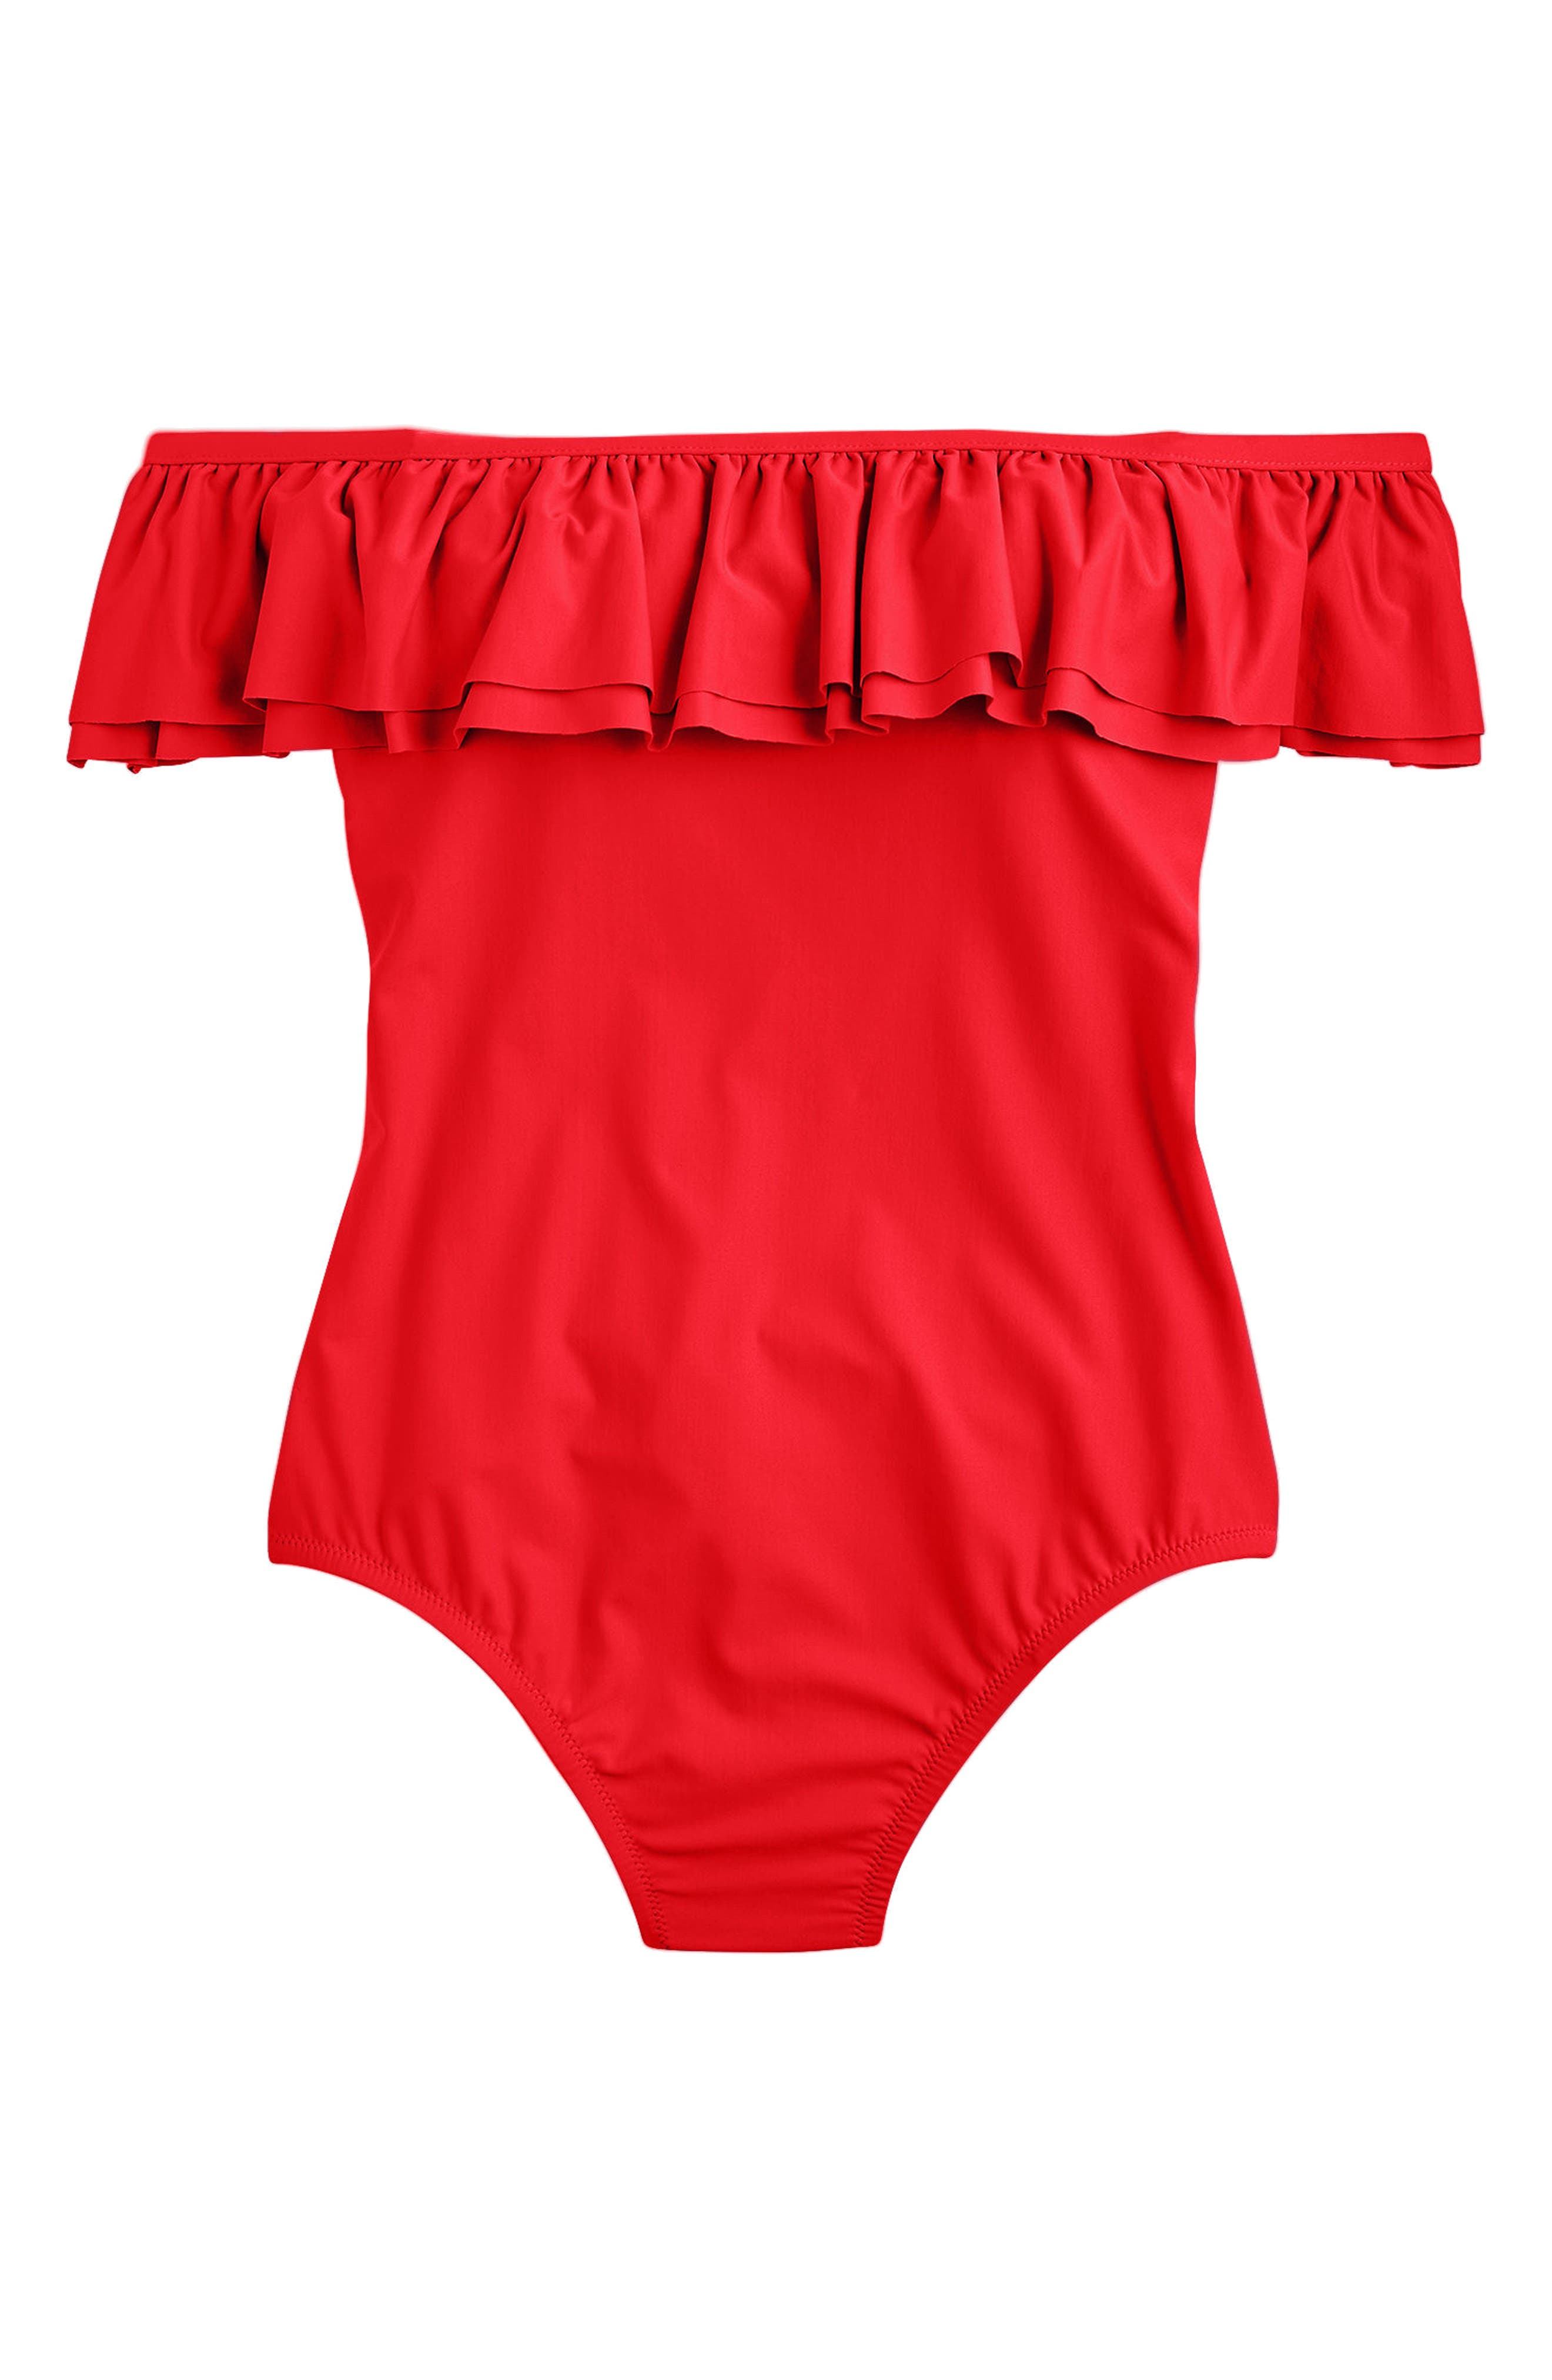 Alternate Image 1 Selected - J.Crew Off the Shoulder Ruffle One-Piece Swimsuit